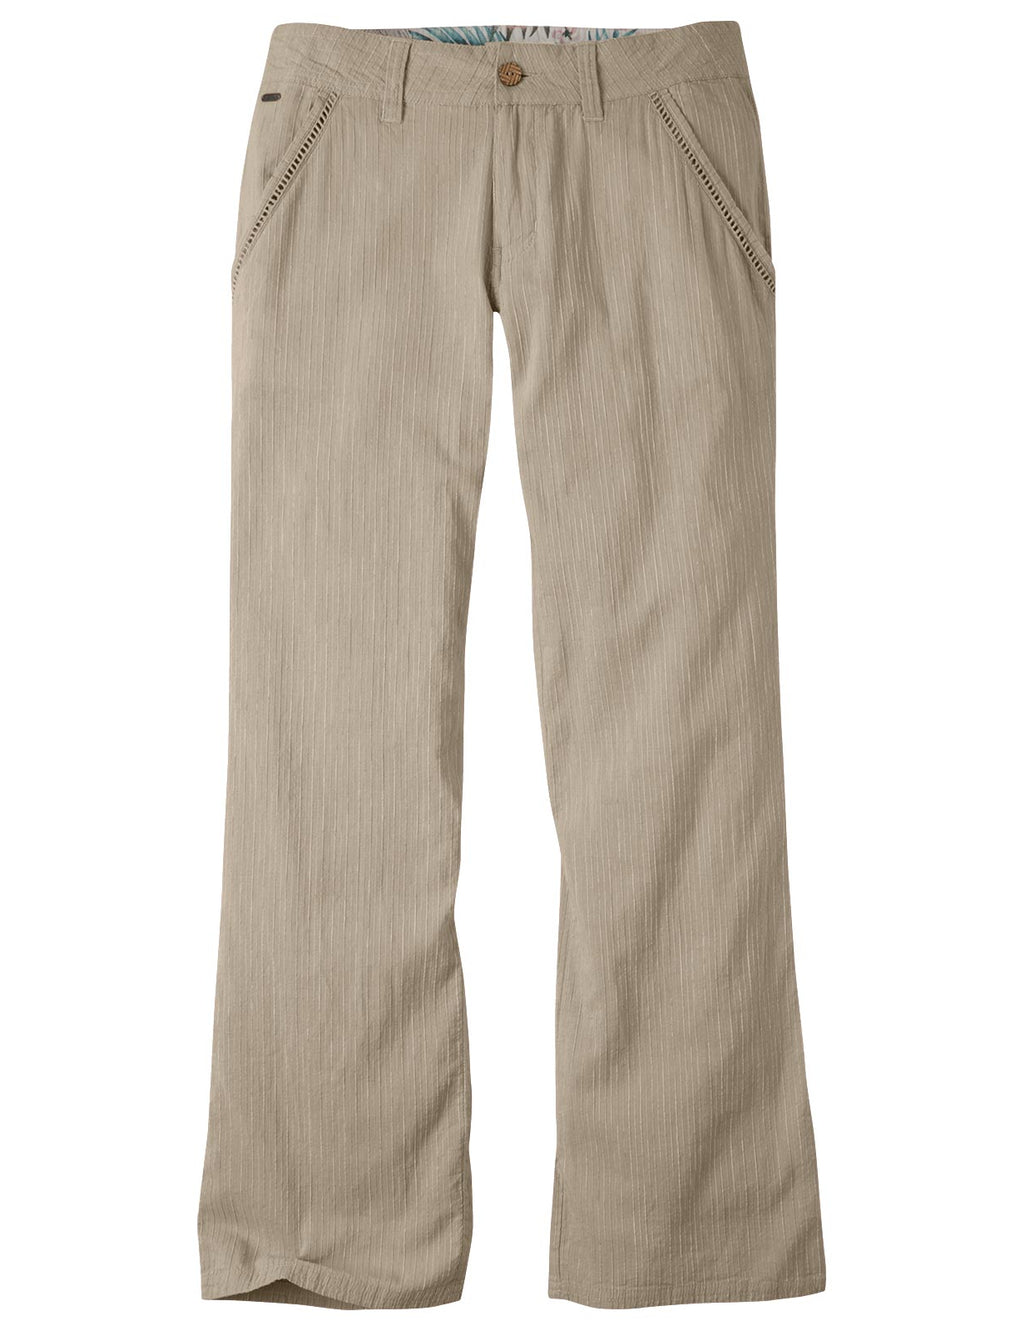 Women's Seaside Pant Relaxed Fit